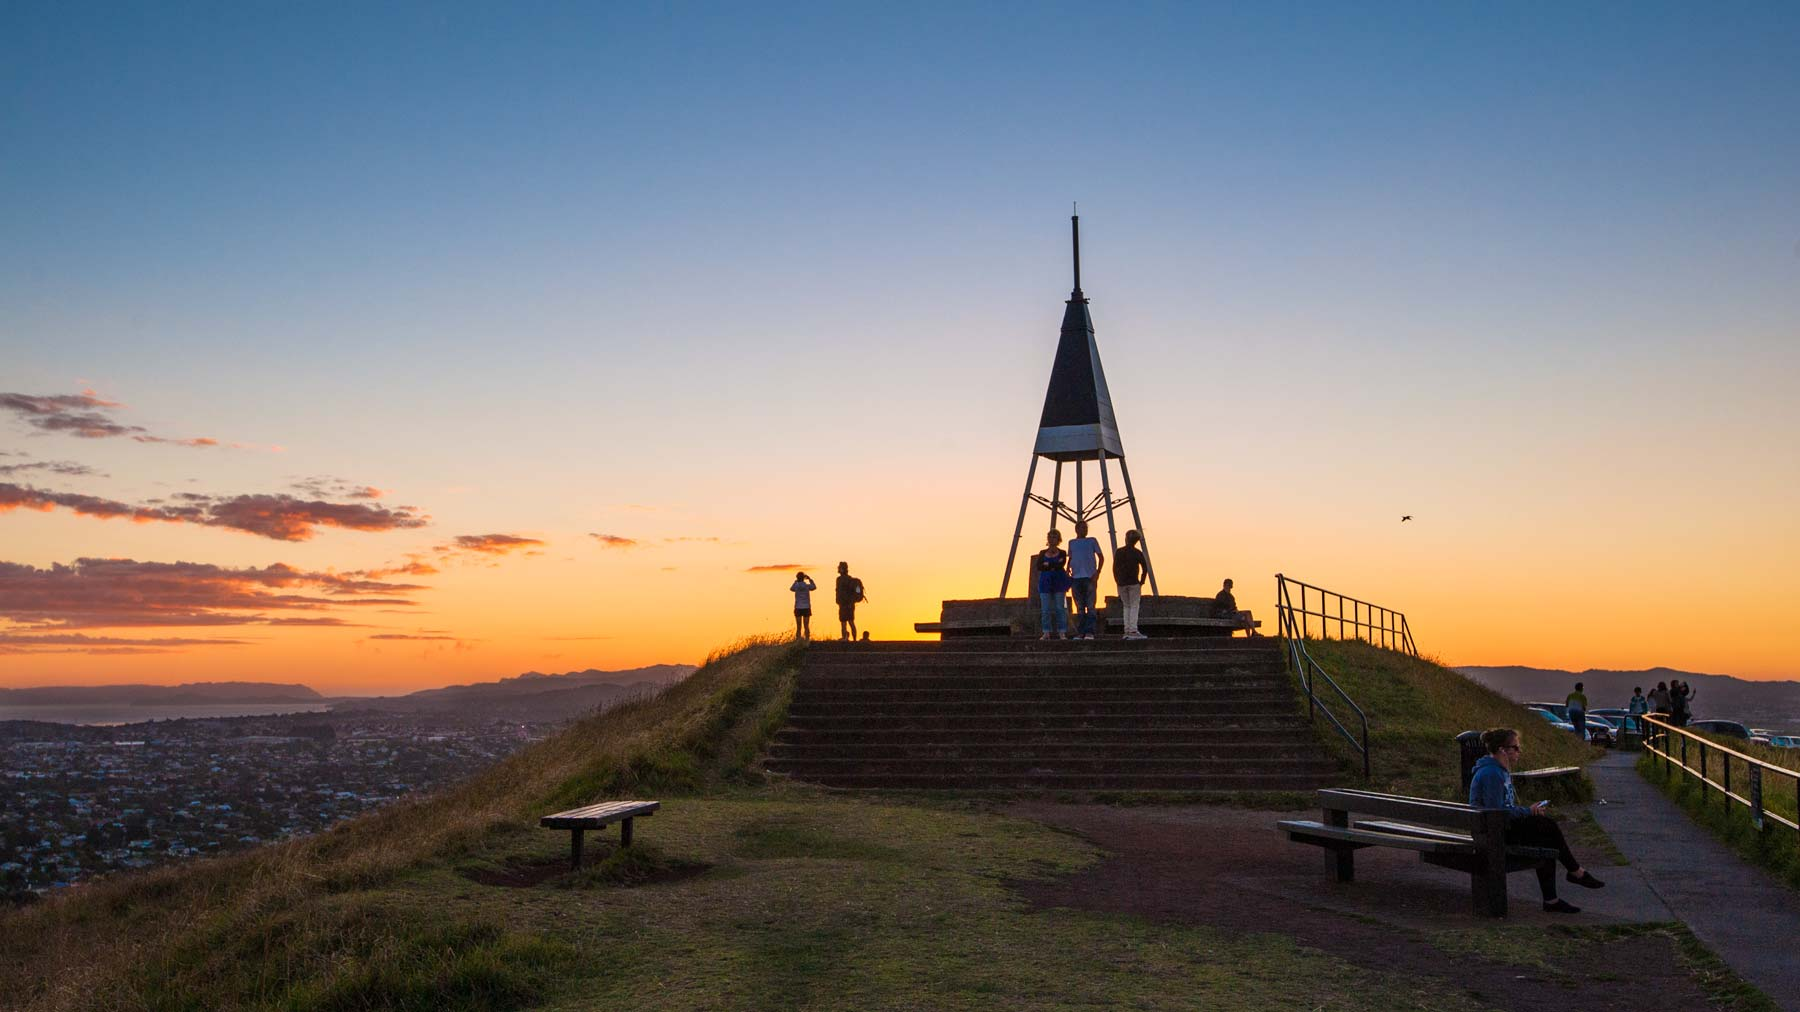 Sundown on Mt Eden.